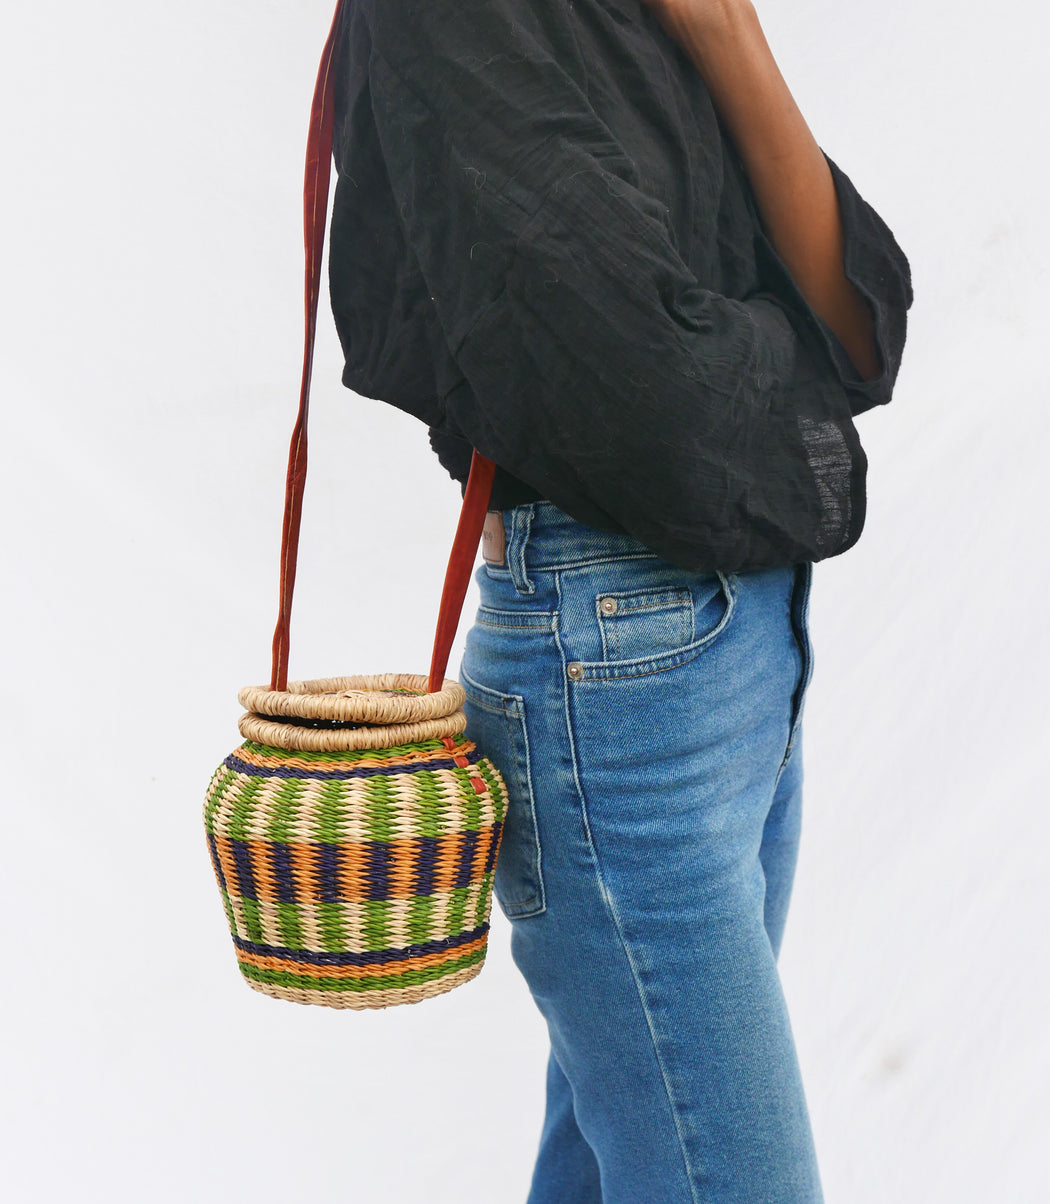 The multicolored Alobahe handbag is handwoven with straw called Kinkahe in Sherigu, Ghana. The shape is versatile and opens from the lid lifted vertical with an adjustable leather strap that can be worn as a crossbody or a handheld bag. This product supports a community with employment, educational opportunities for the children and improve the work environment.